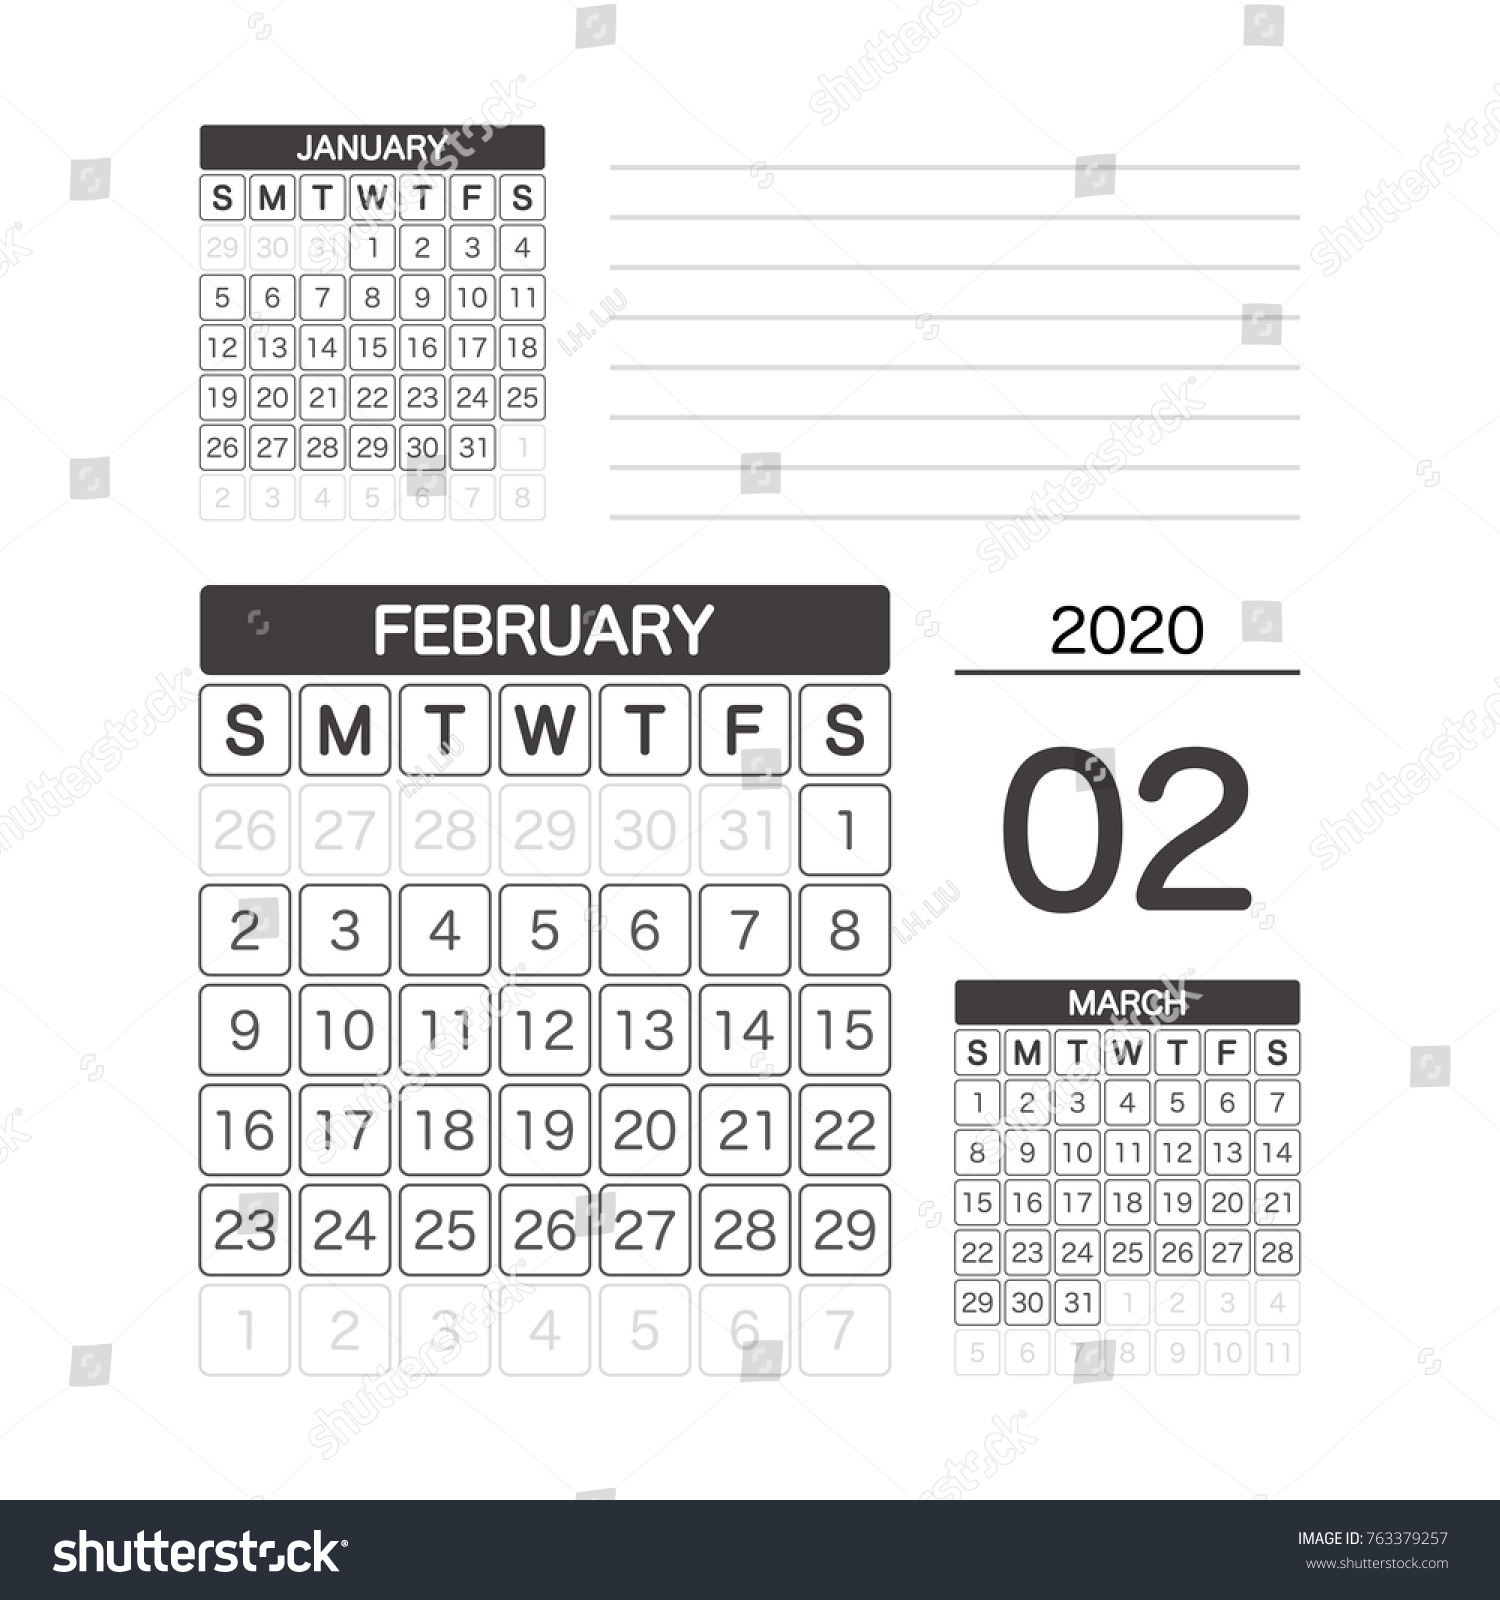 Calendar 2020 February And March.2020 February Calendar Planner Design Stock Vector Royalty Free